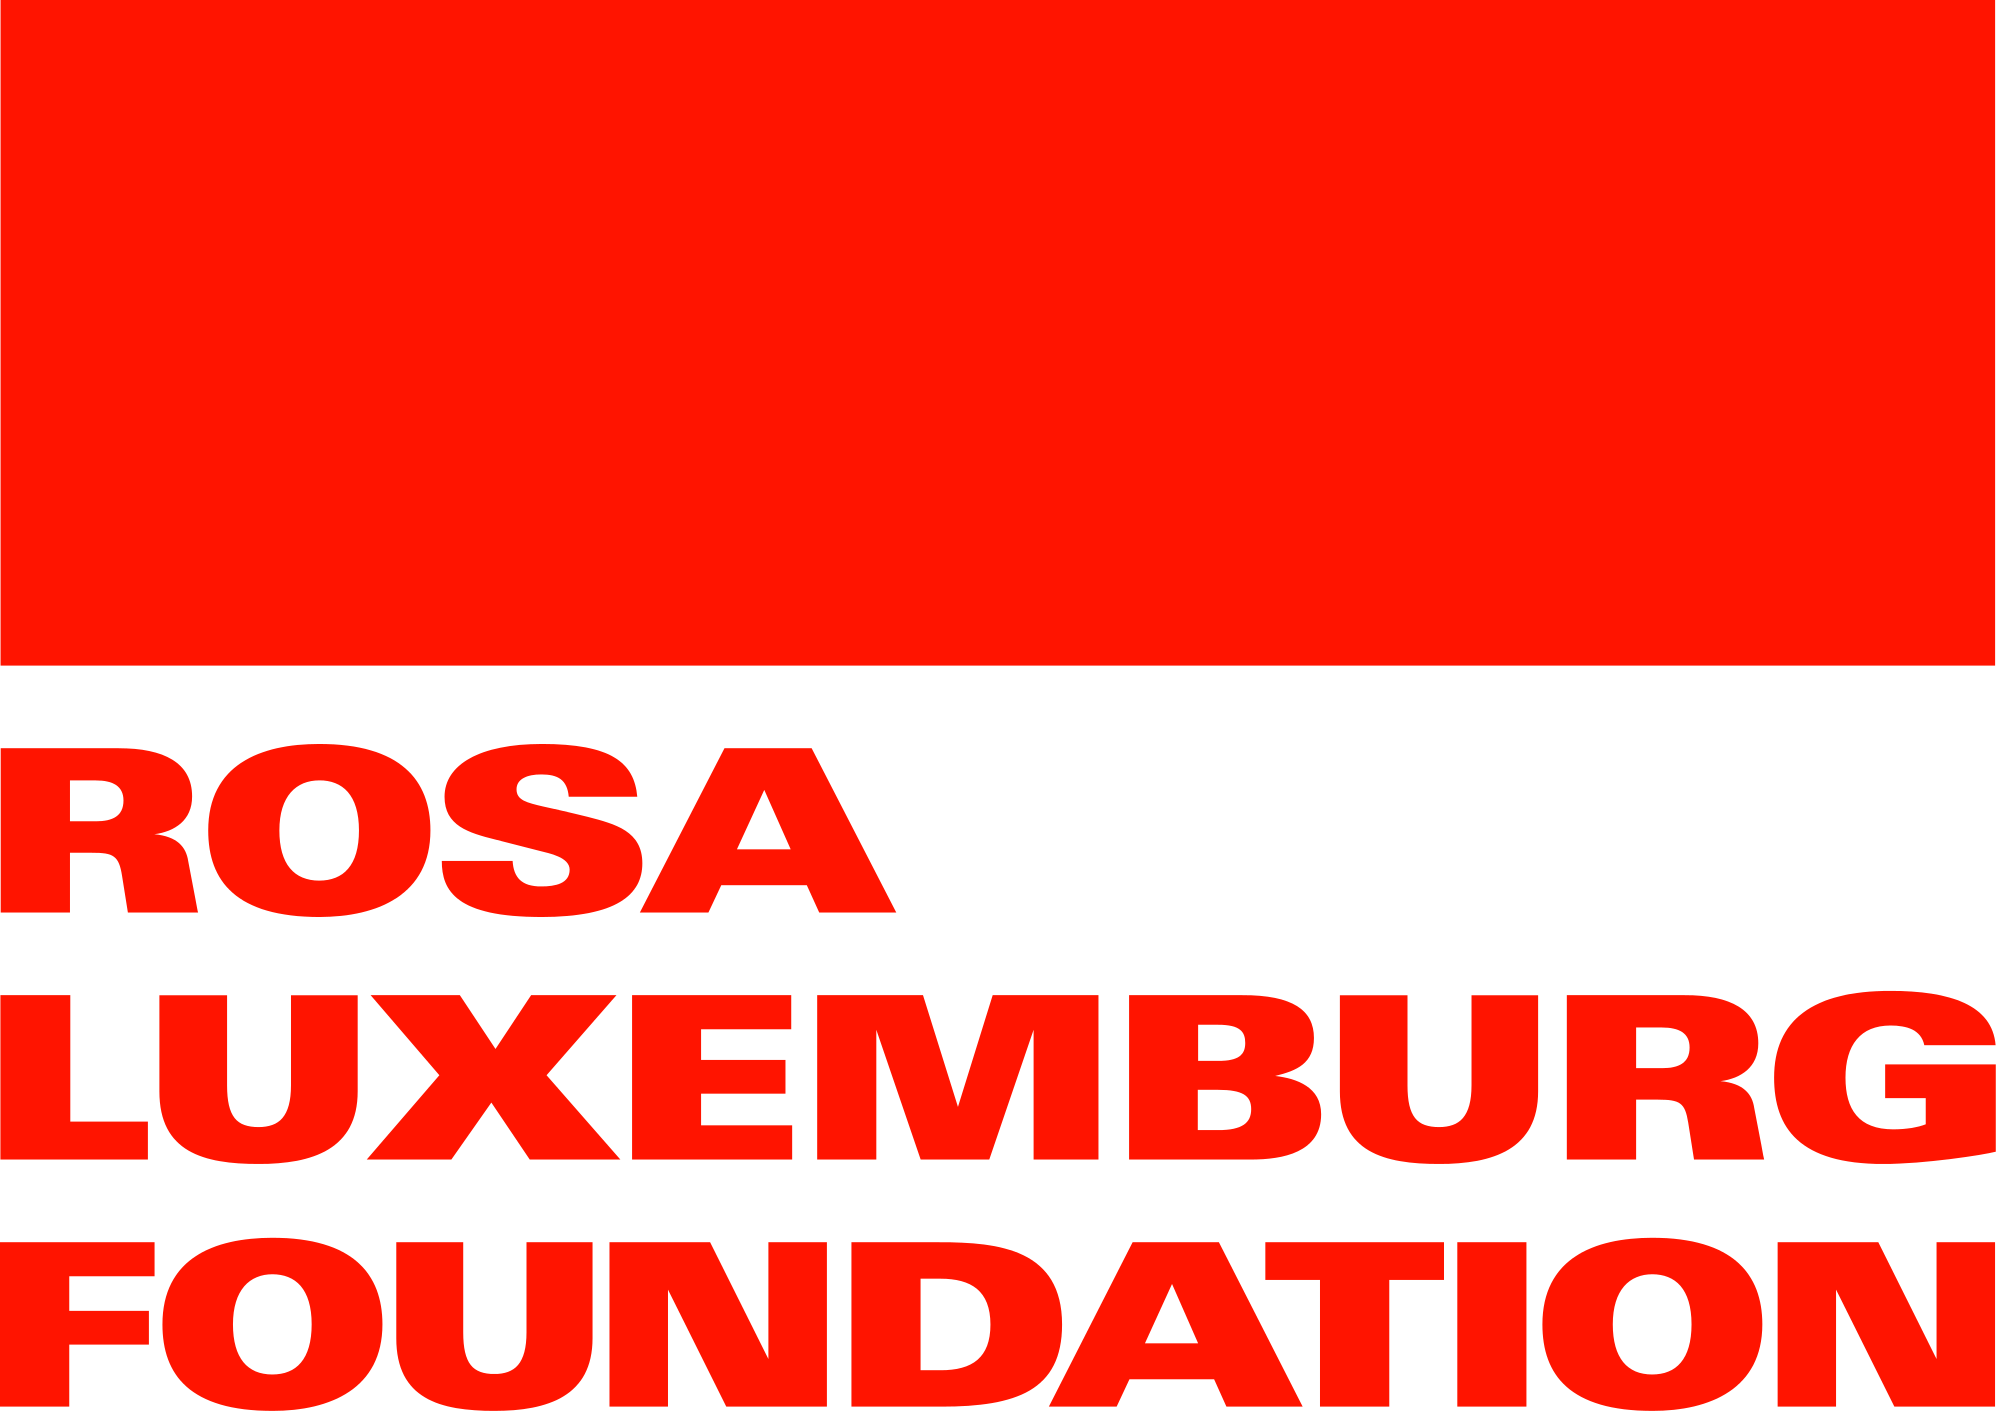 Rosa_Luxemburg_Foundation_logo